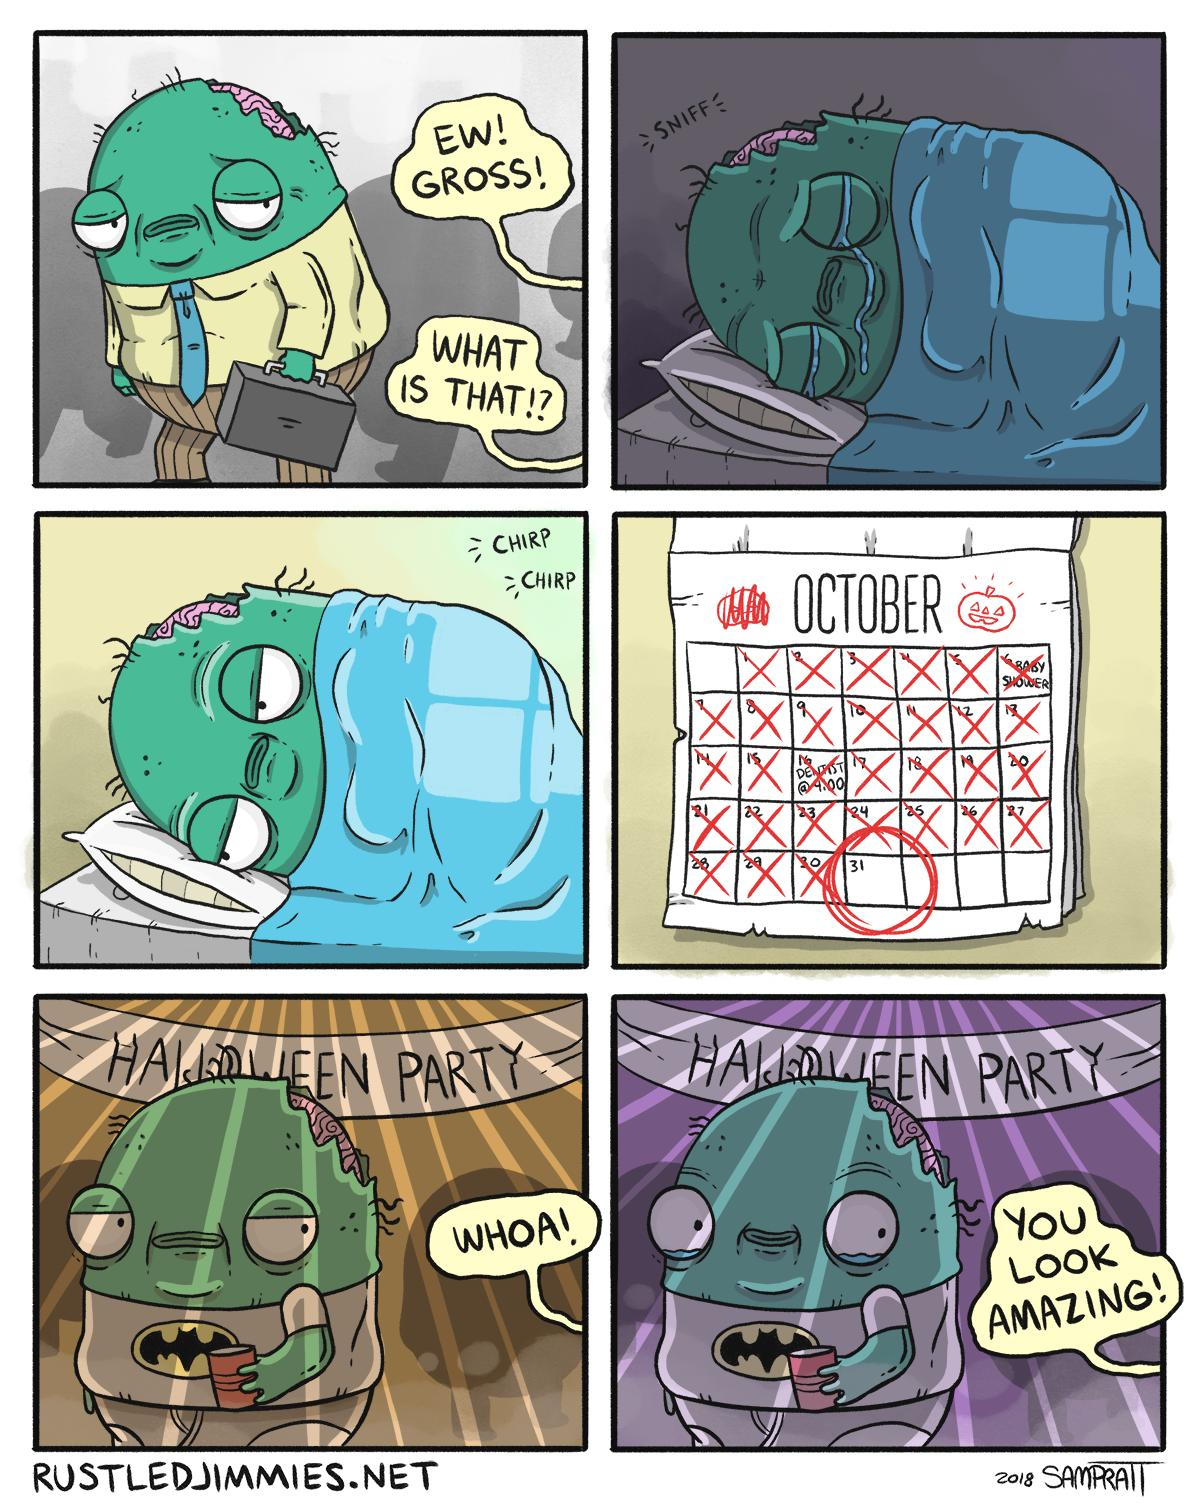 Wholesome Zombie